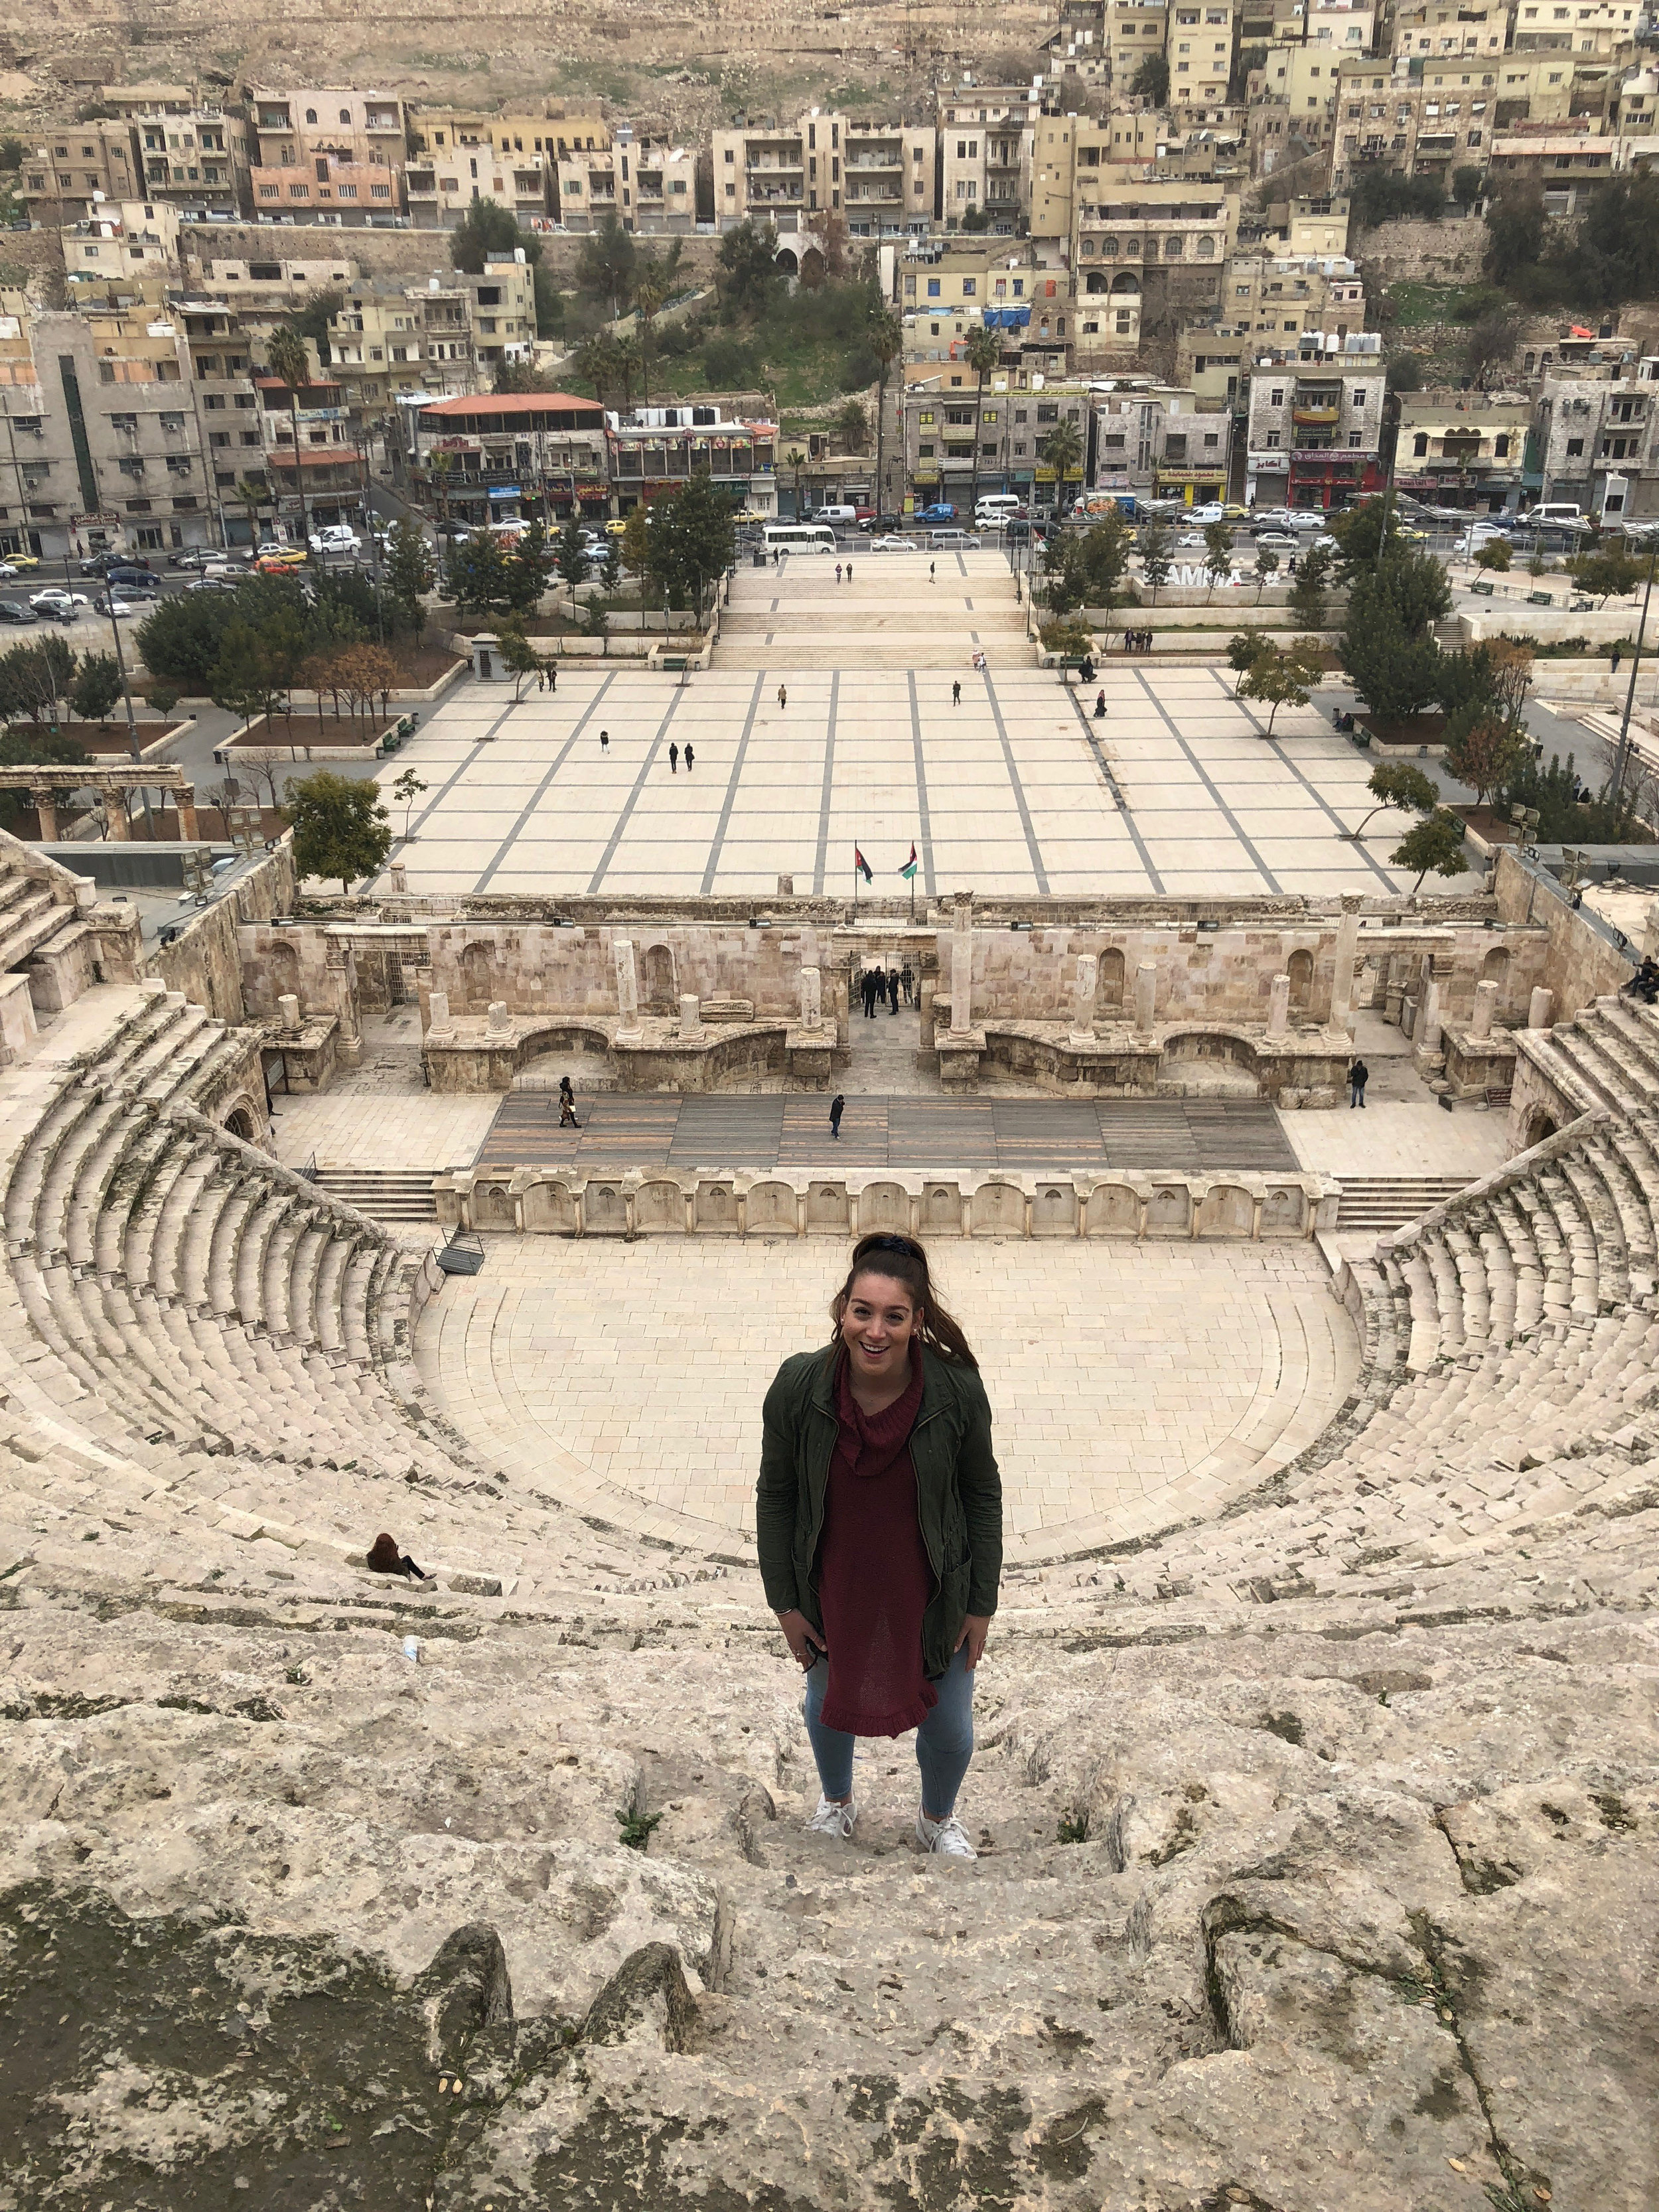 1. One of my first adventures in Amman was a city tour to the Roman Amphitheatre and Citadel with Amideast. Photo credit: Arguin, 2019